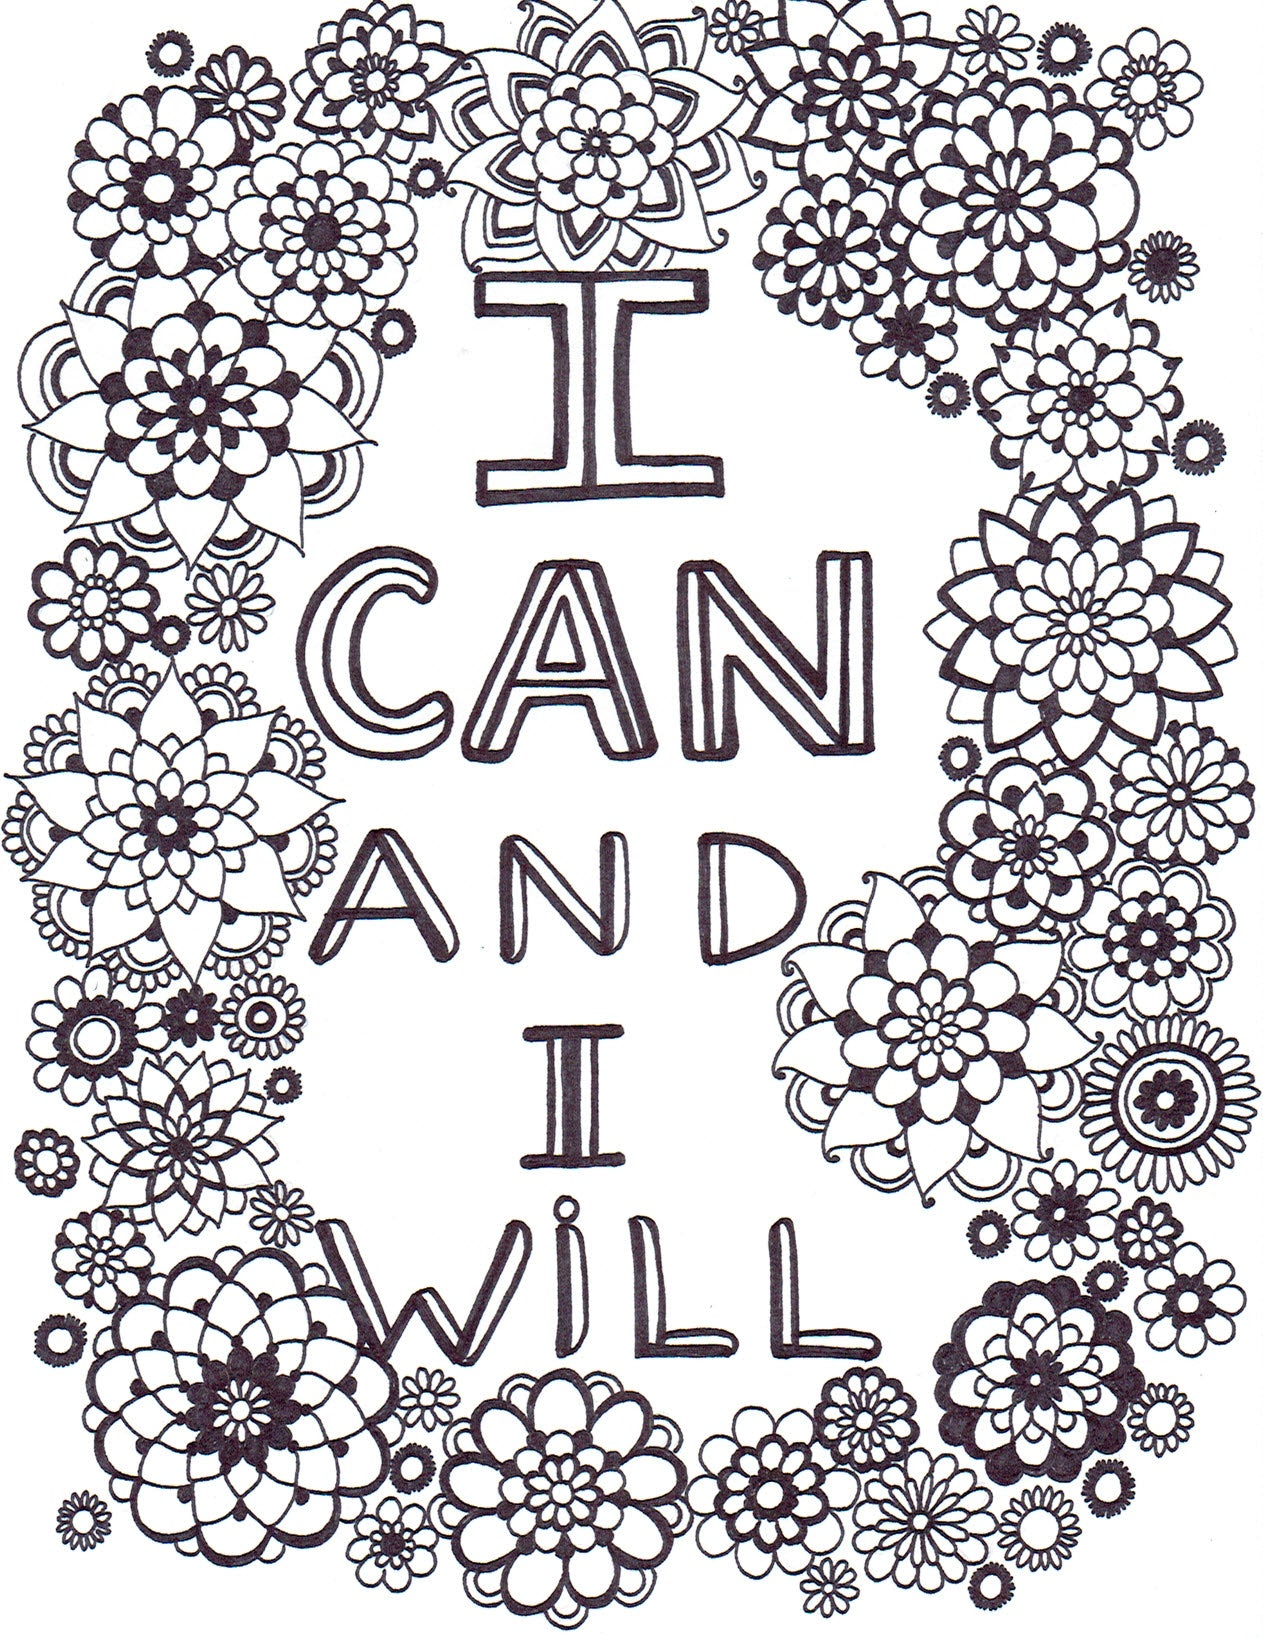 I CAN AND I WILL - You-Color